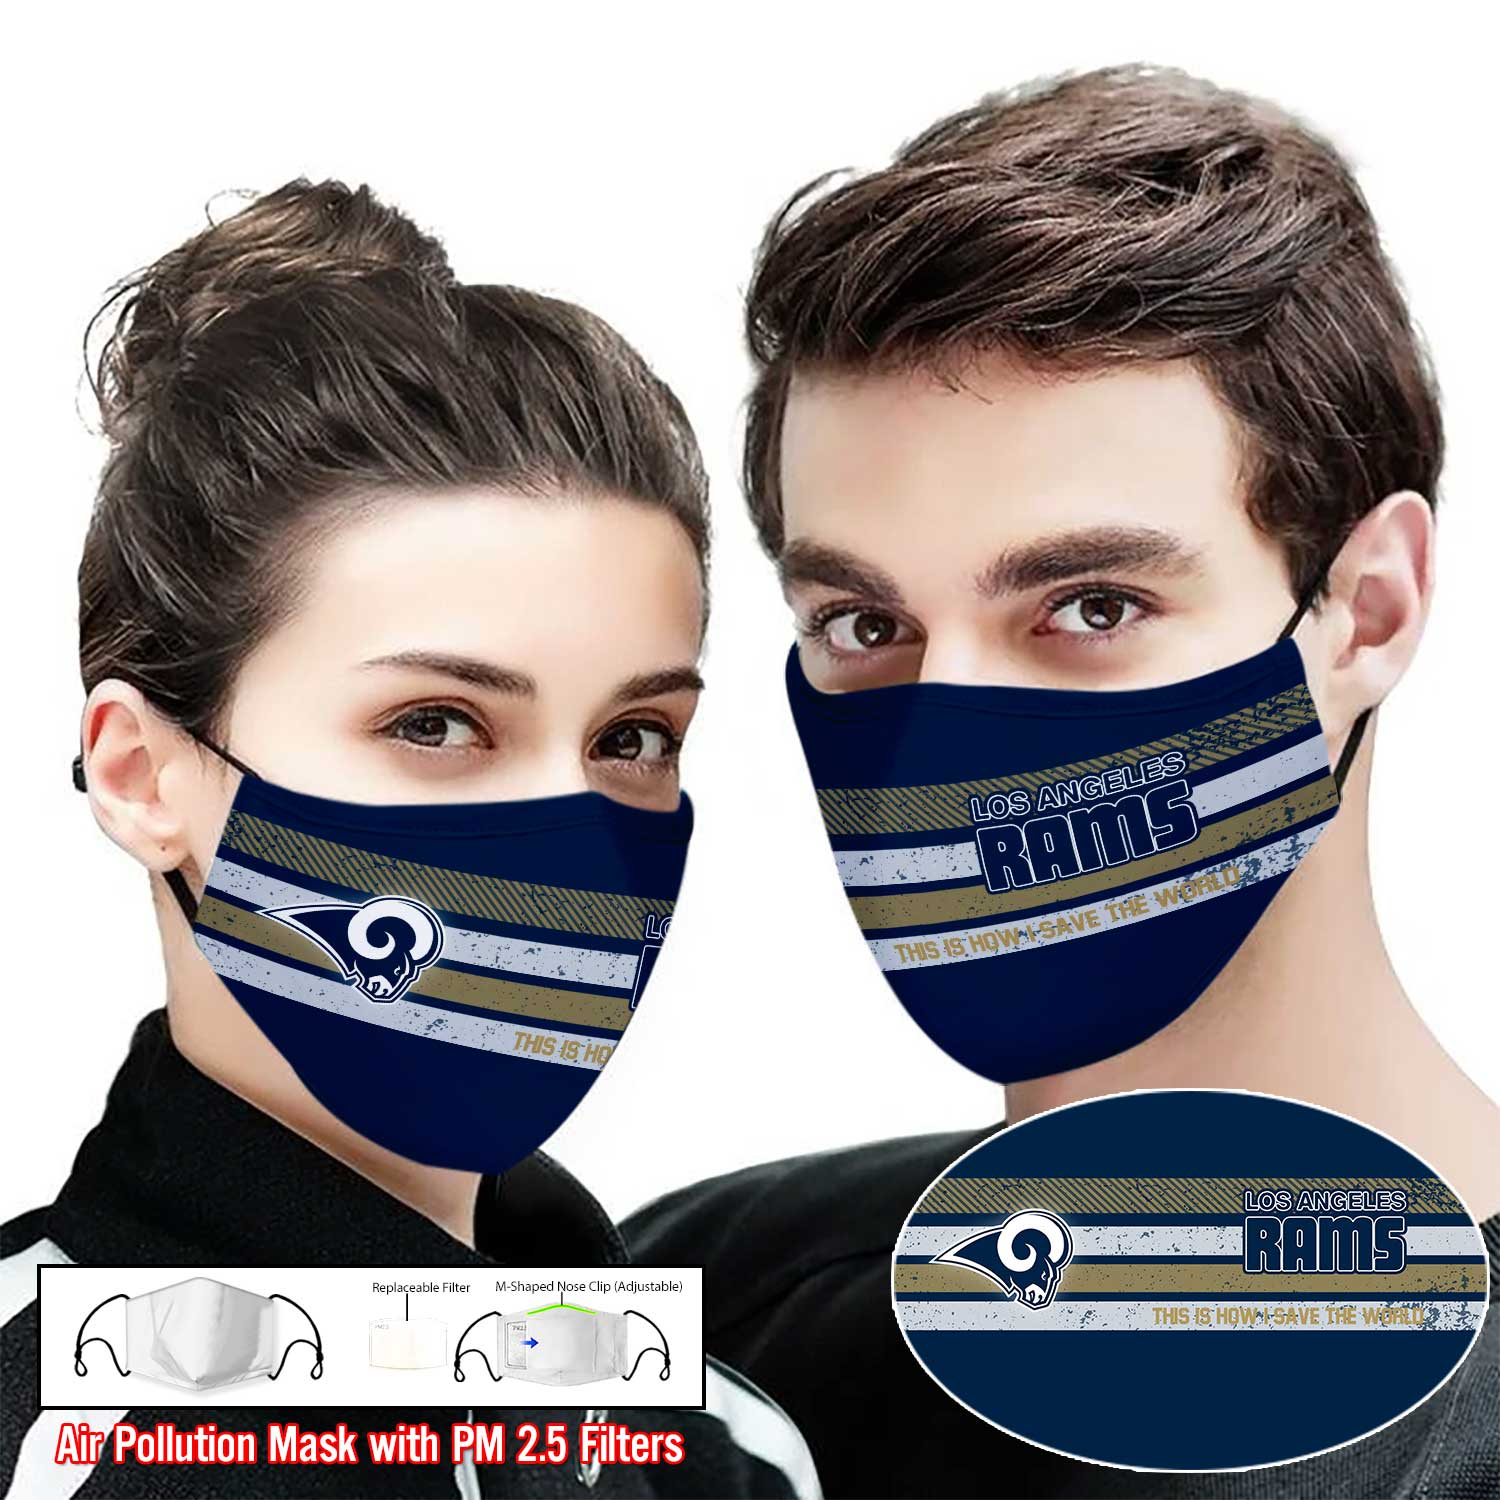 Los angeles rams this is how i save the world full printing face mask 2